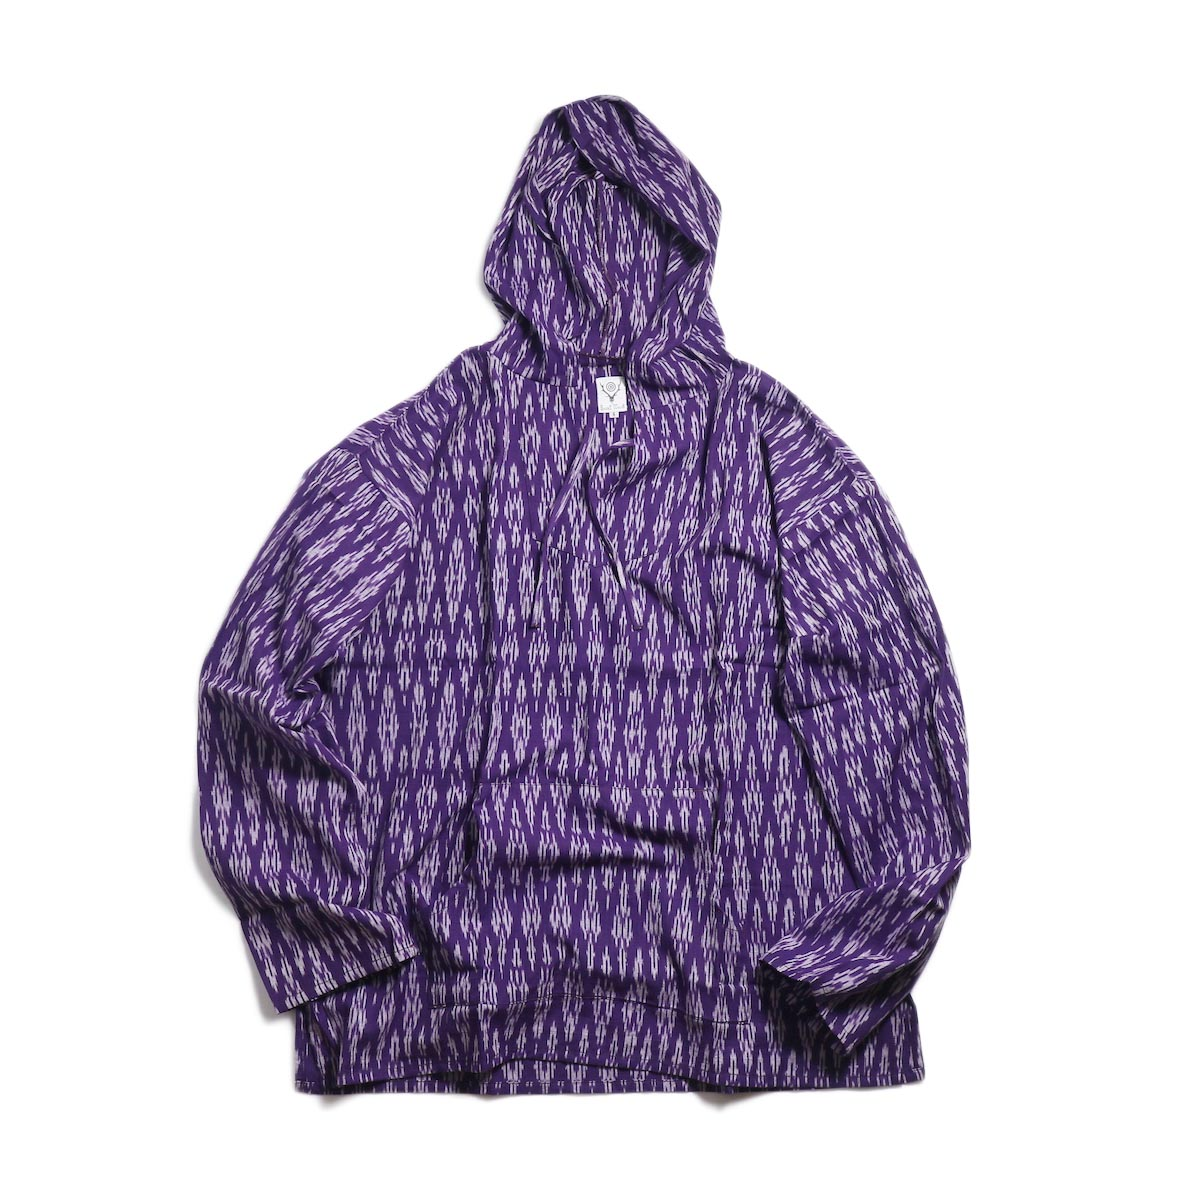 SOUTH2 WEST8 / Mexican Parka -Cotton Cloth / Splashed Pattern (Purple)